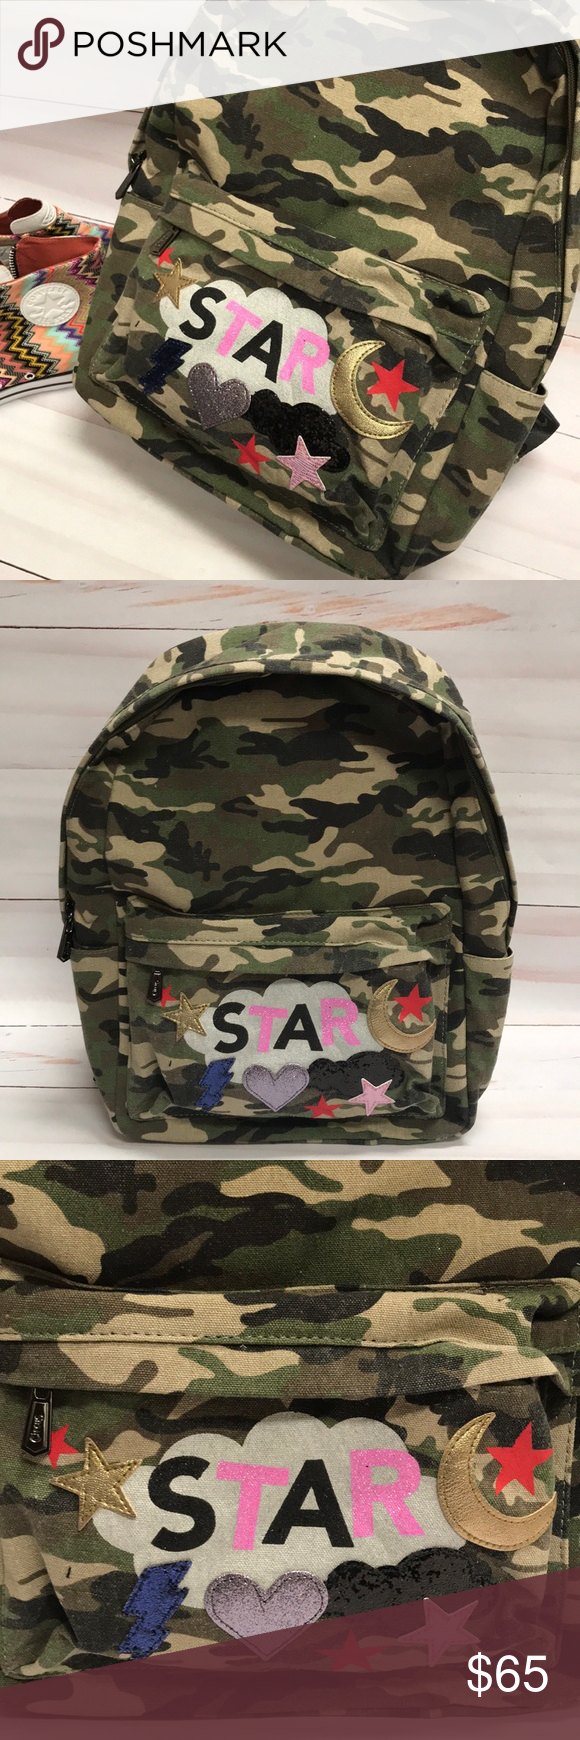 """2c6c13ea3483 Circus By Sam Edelman Backpack Camo Stars Graphics Circus By Sam Edelman  camouflage backpack with glitter graphics new with tags. The backpack  measures 15"""" ..."""